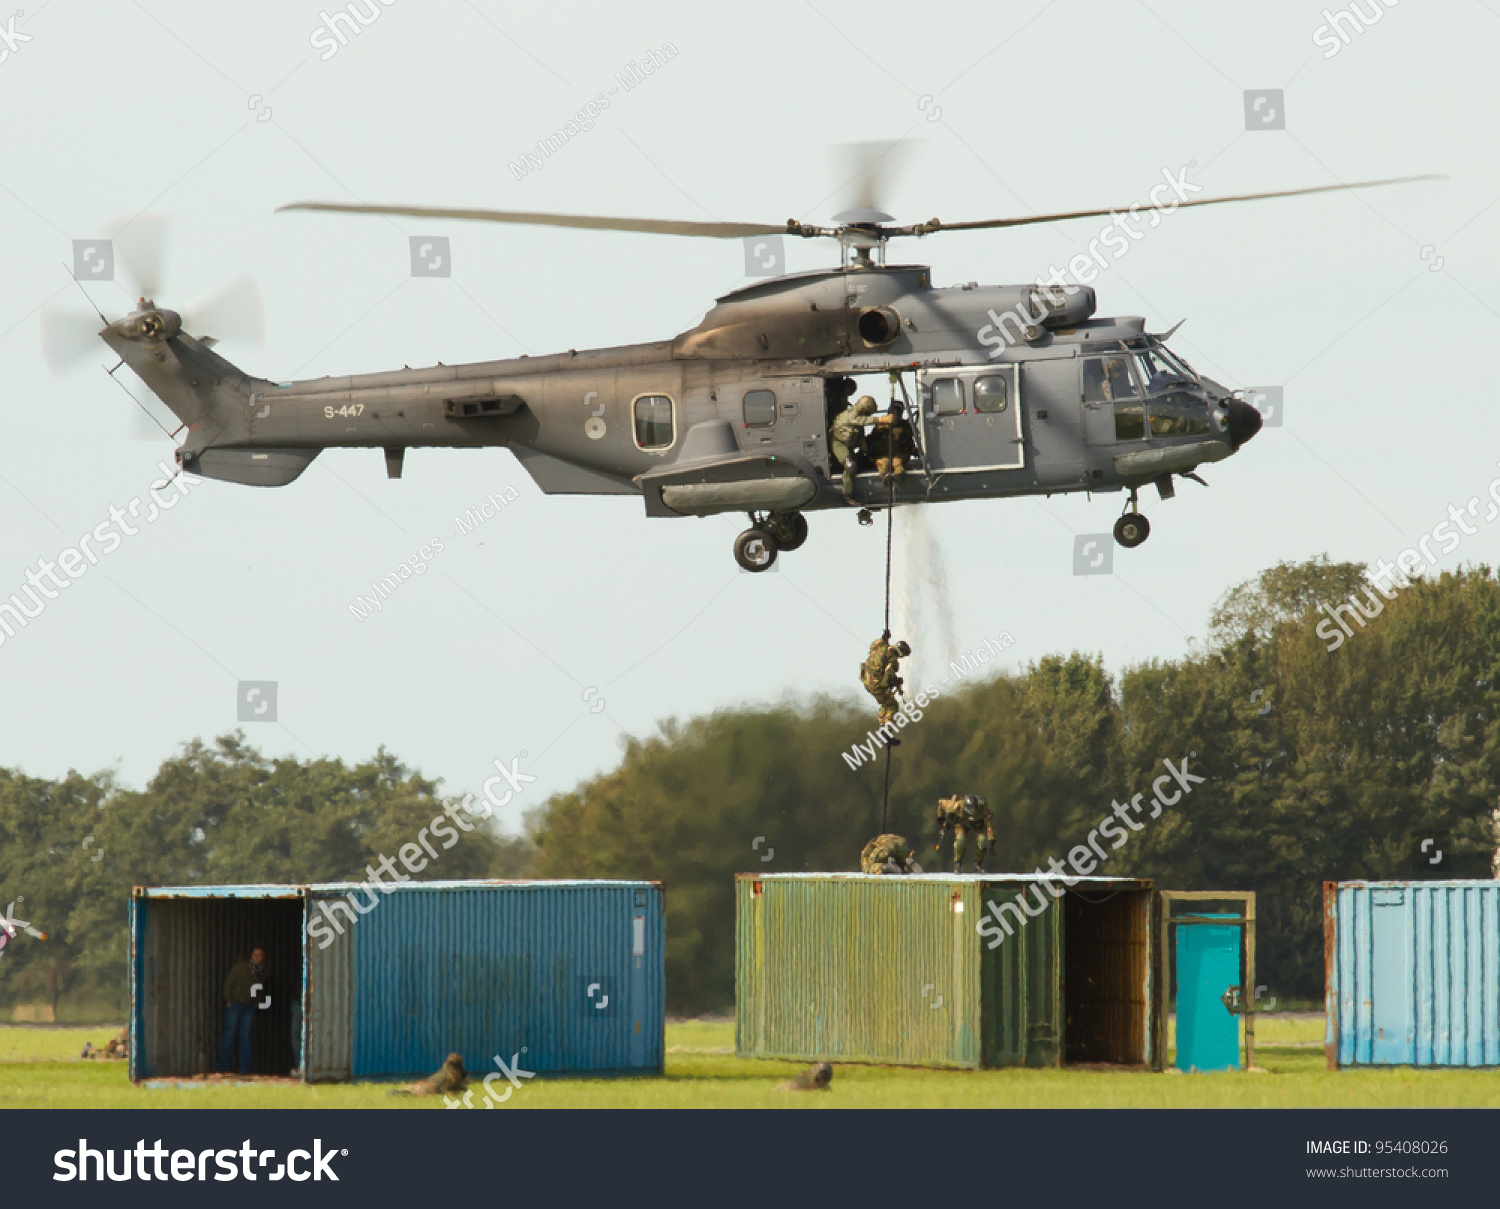 LEEUWARDEN,FRIESLAND,HOLLAND-SEPTEMBER 17: A dutch Cougar helicopter at the  Airshow on September 17, 2011 at Leeuwarden Airfield - Image